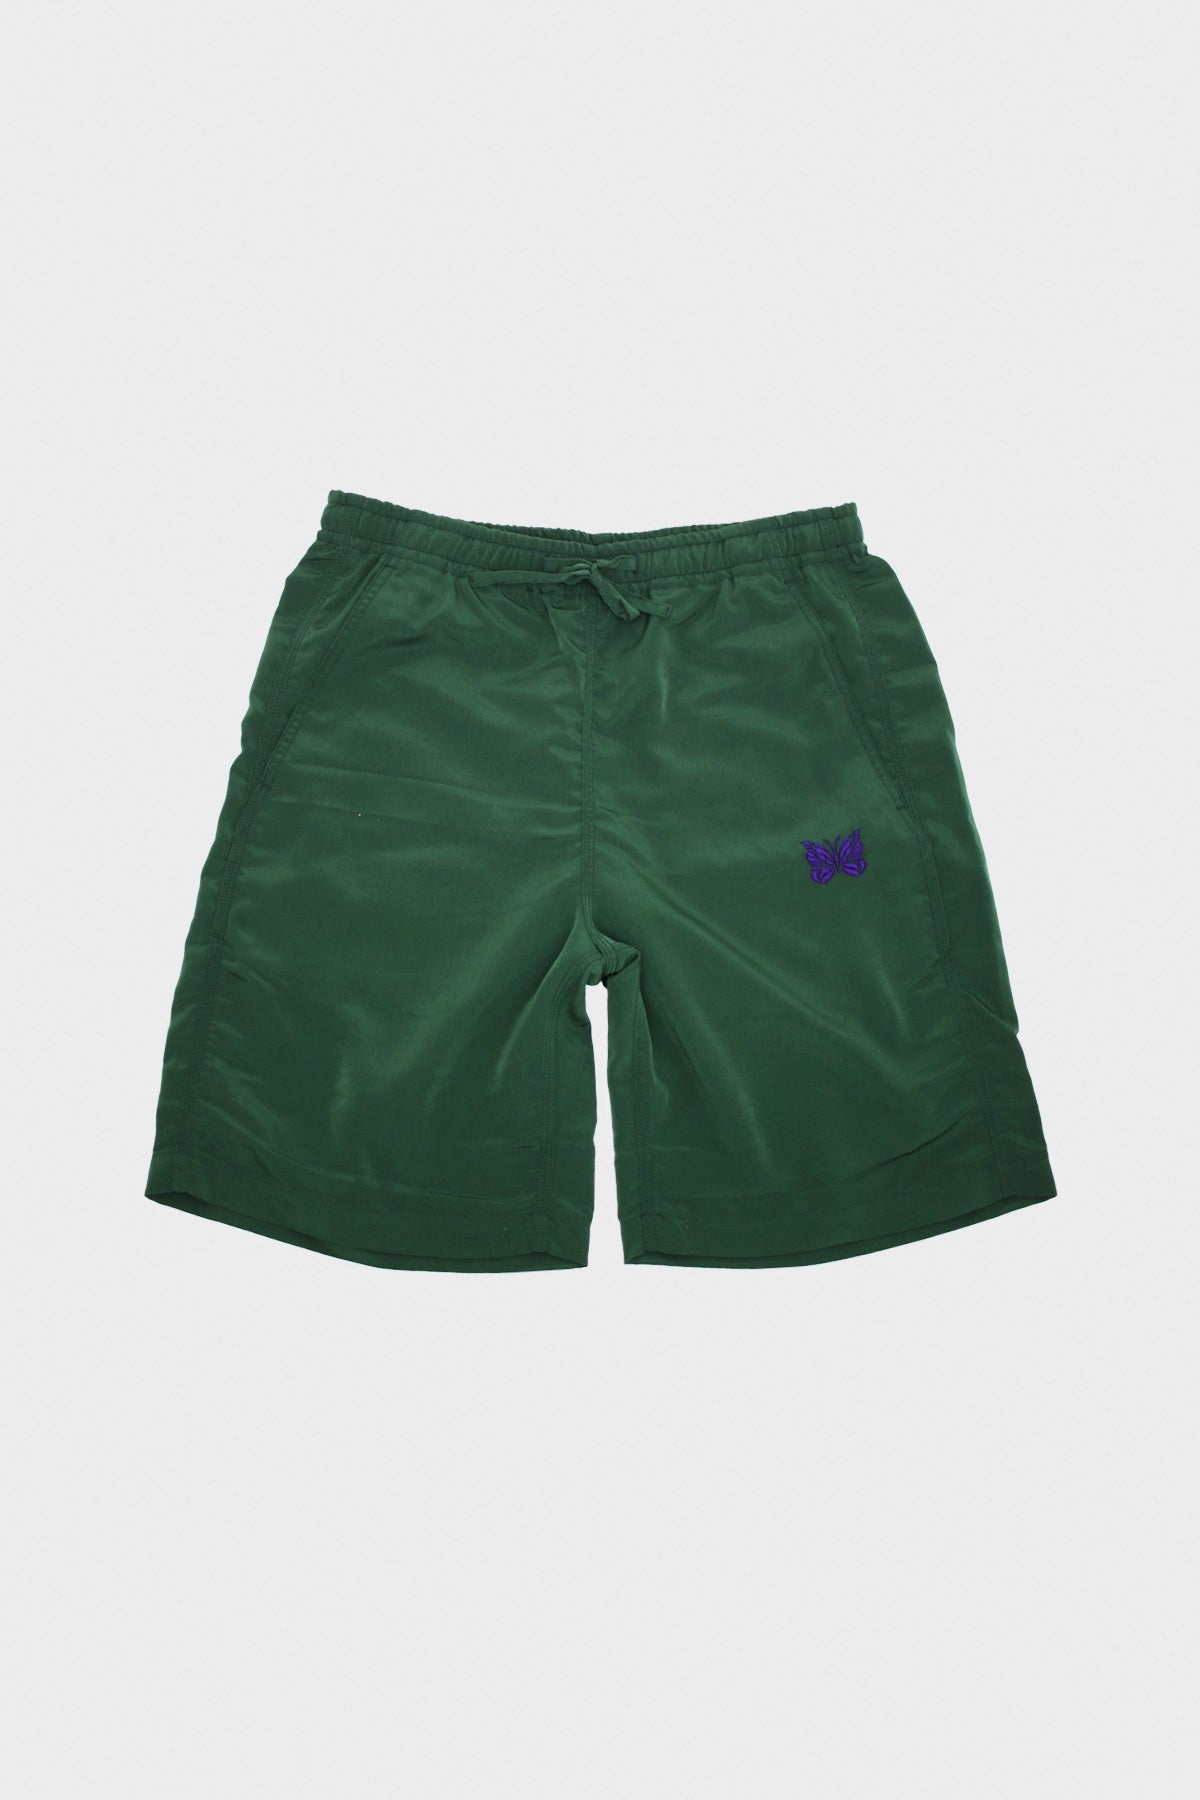 Needles - Basketball Short - Green - Canoe Club